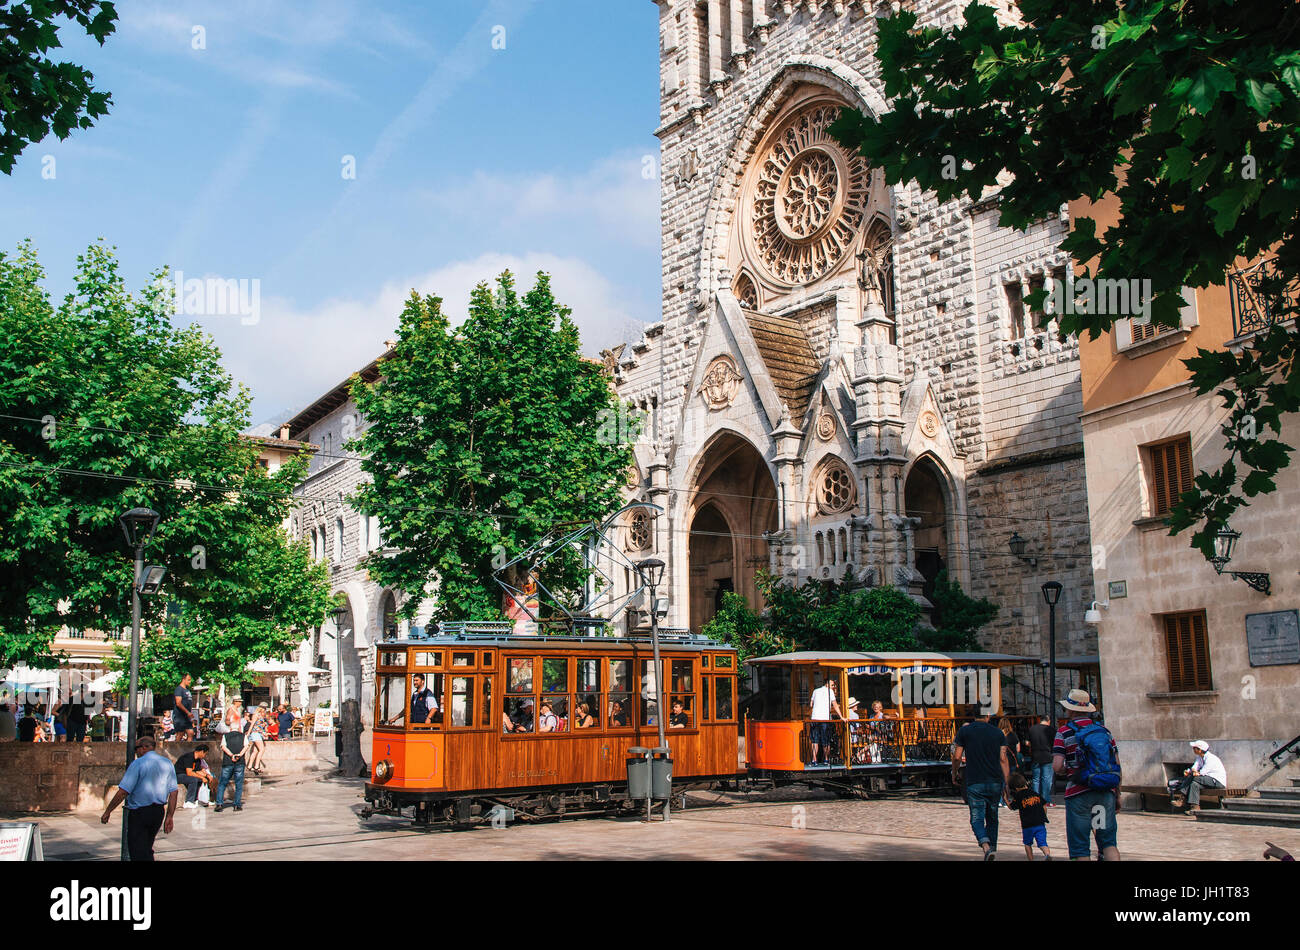 Port de Soller, Mallorca, Spain - May 26, 2016: Old tram in Soller in front of medieval gothic cathedral with huge - Stock Image